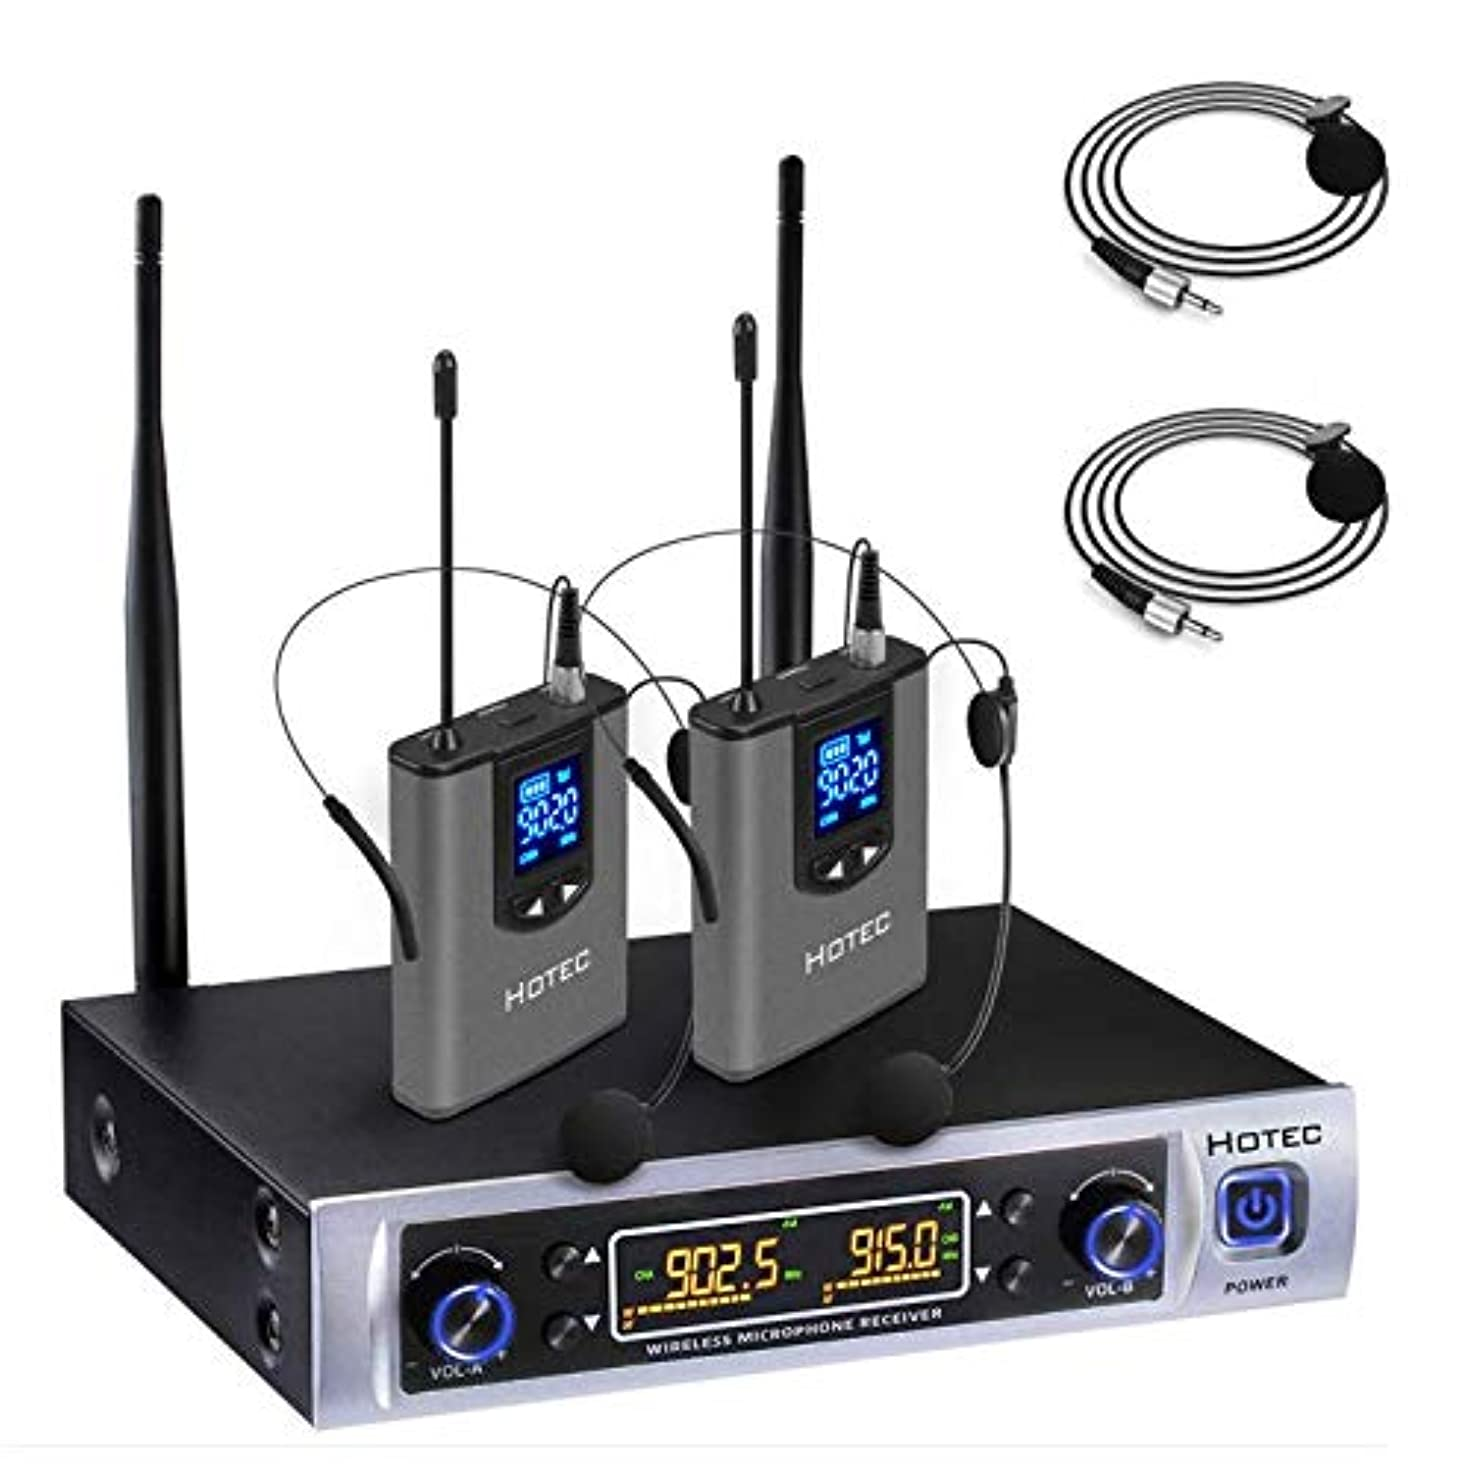 Hotec UHF 64 Channel Wireless Microphone System with LCD Display and Dual Headset Microphone Over PA, Mixer, Speaker, Karaoke Machine For Church, Training, Classroom, Interview, Business Presentations